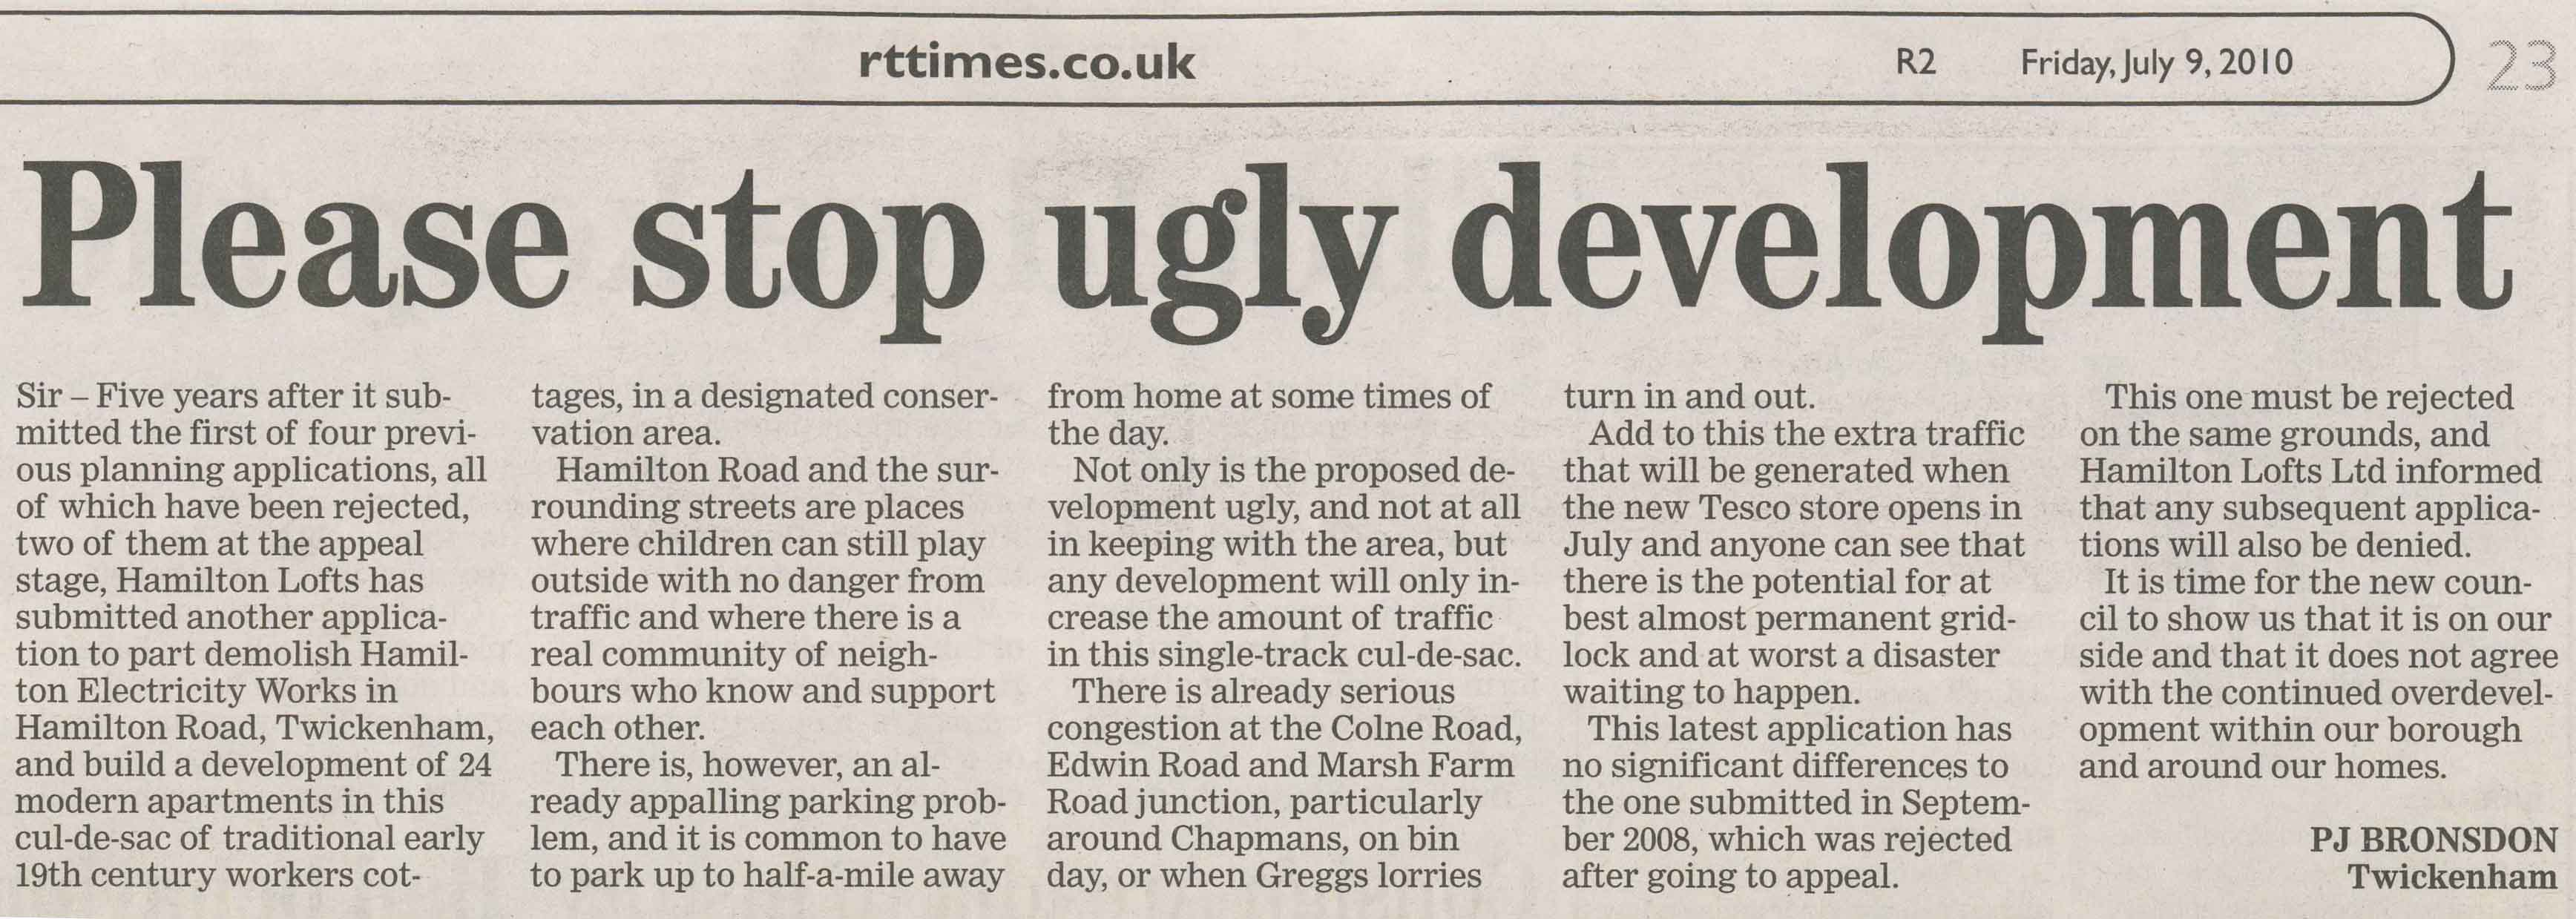 Please stop ugly development